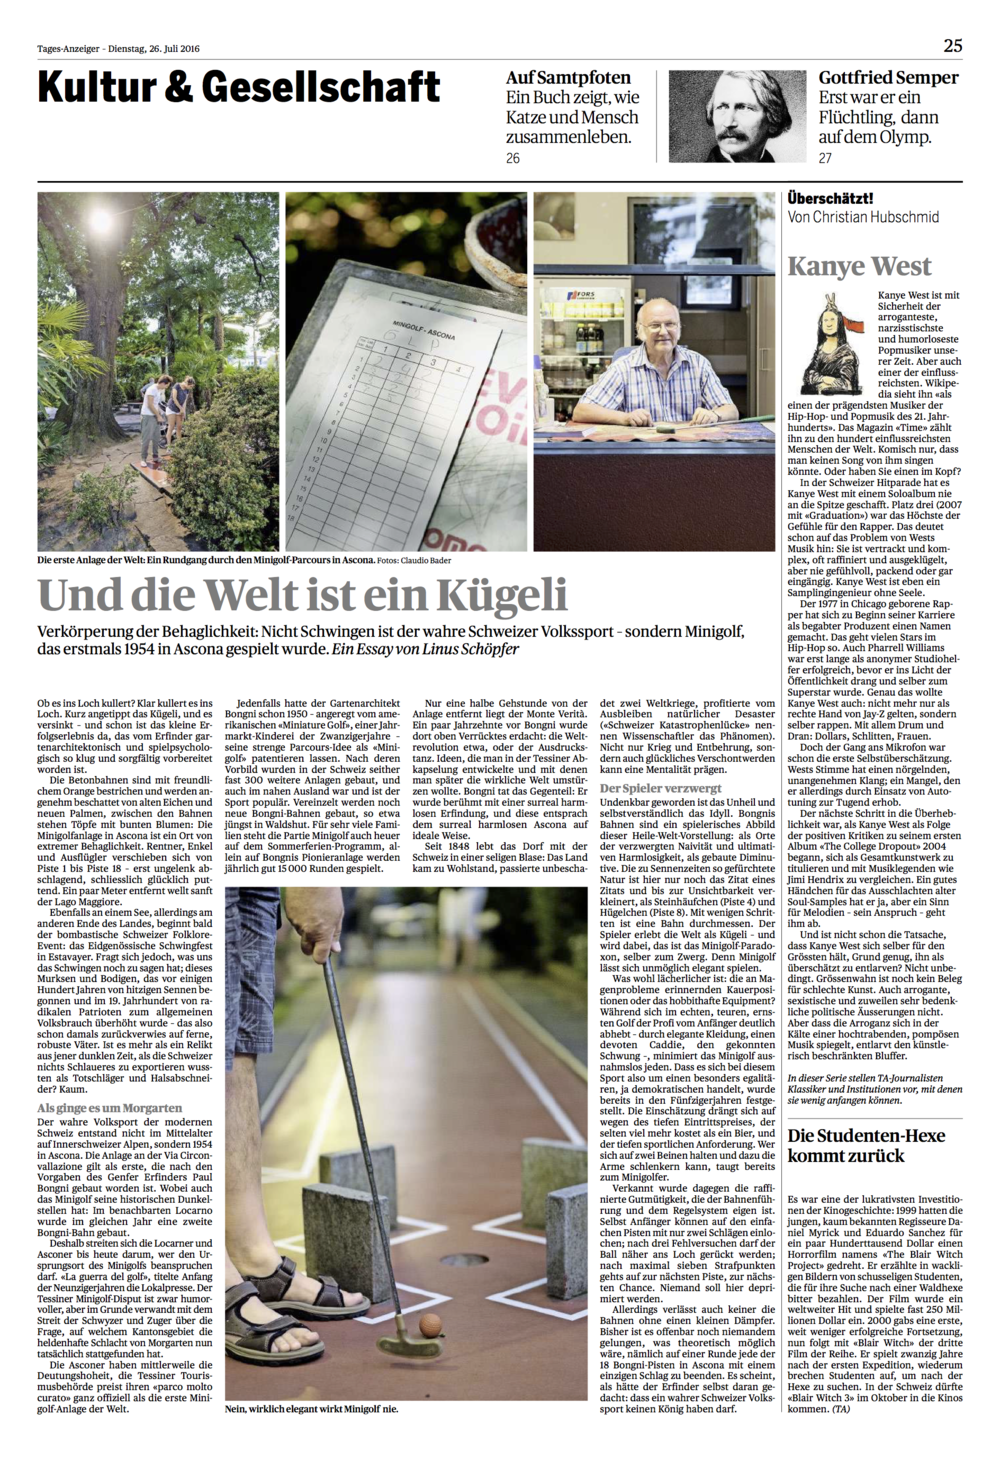 Seite_25_Tages-Anzeiger_2016-07-26.png